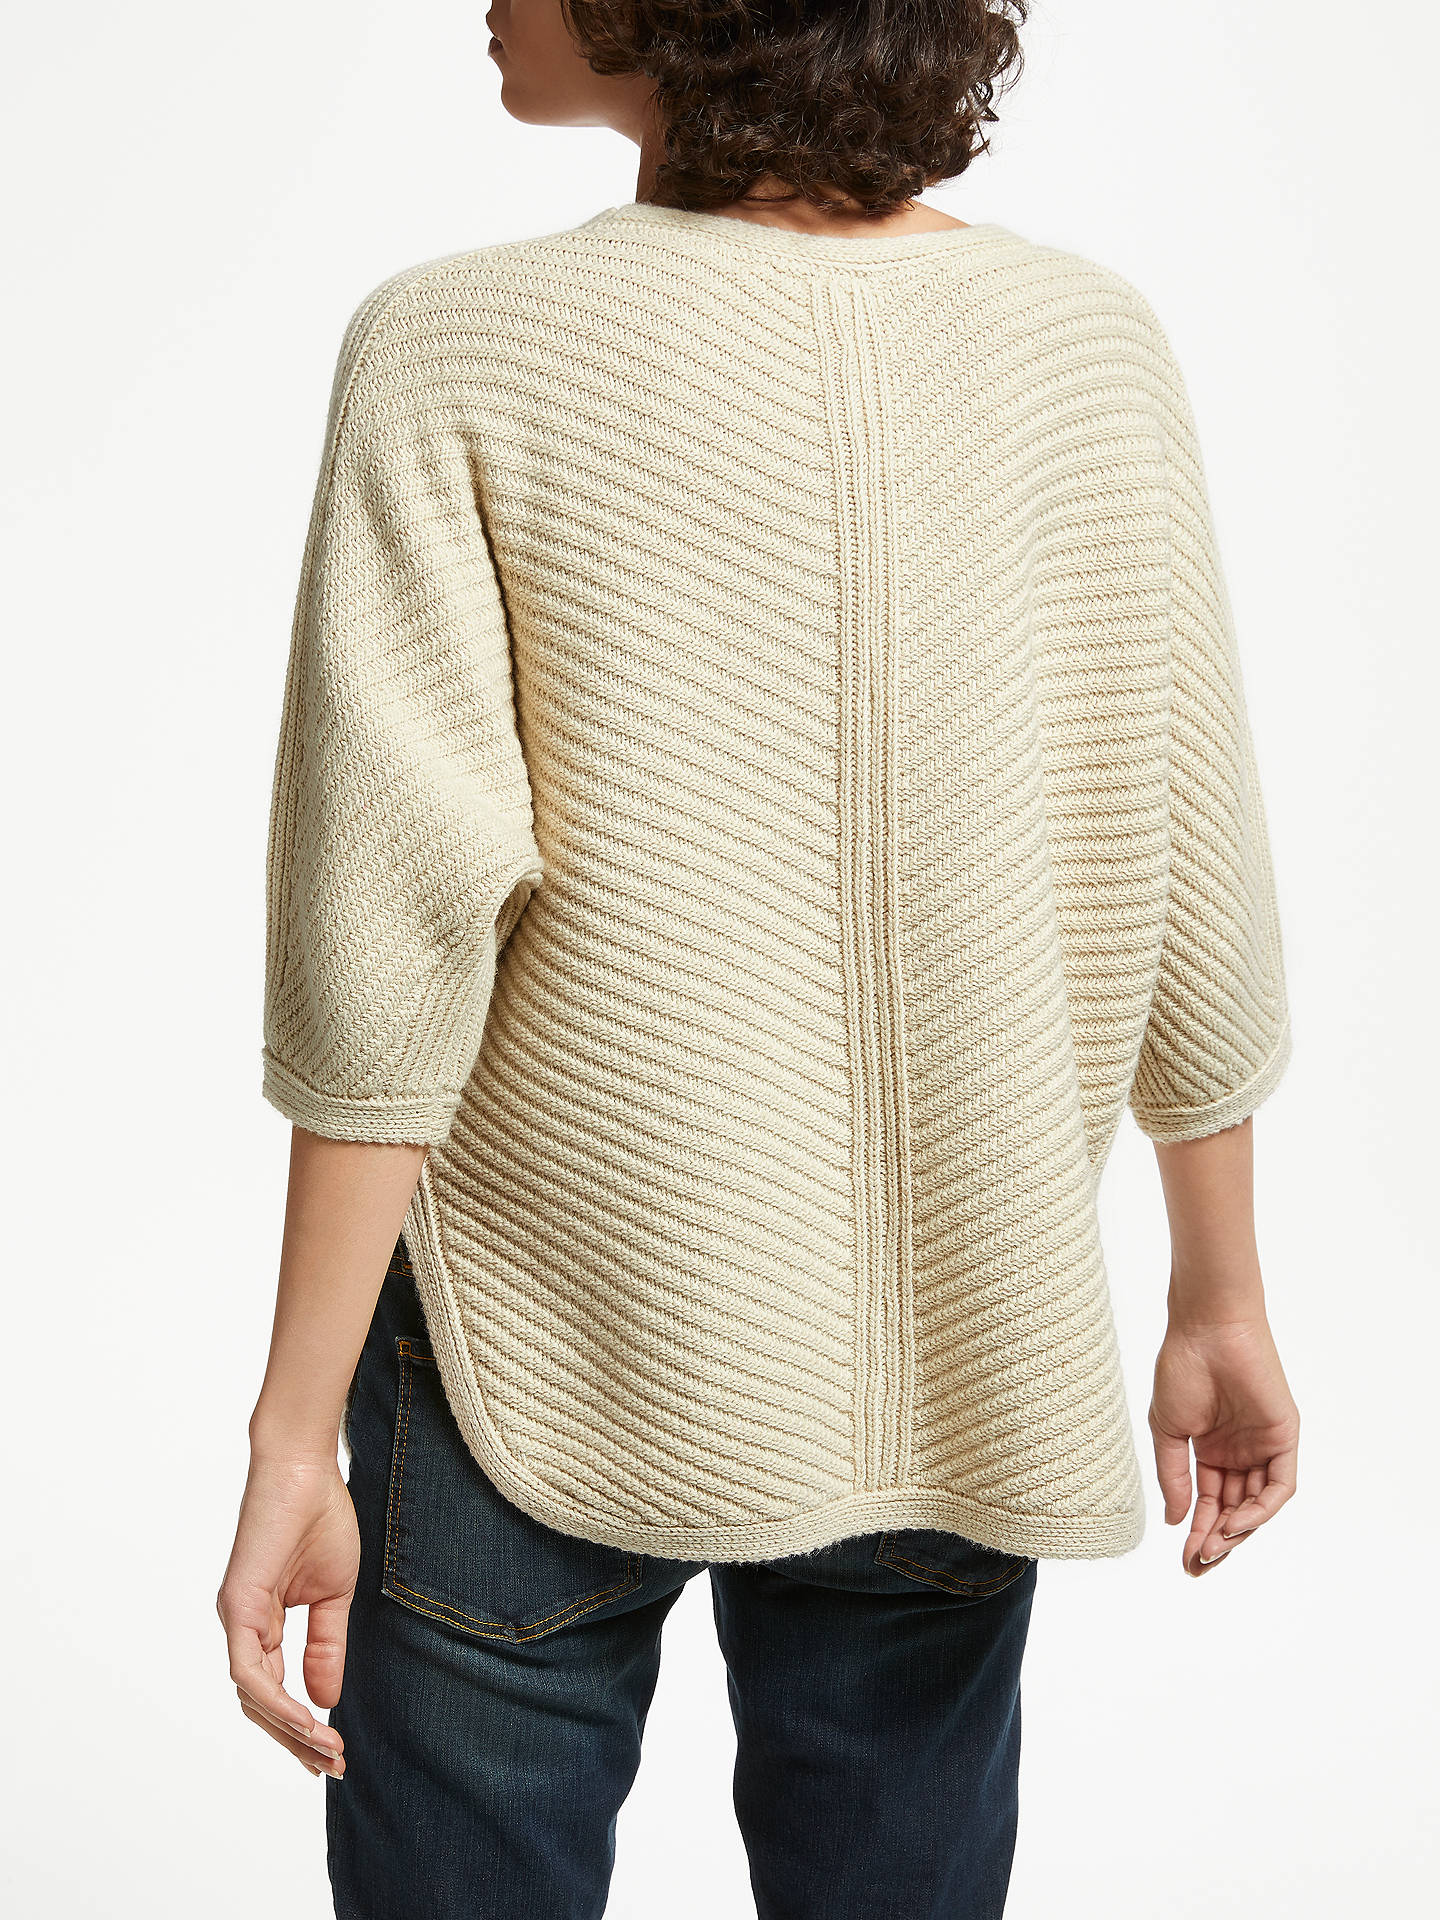 BuyAND/OR Cocoon Rib Jumper, Neutral, S Online at johnlewis.com